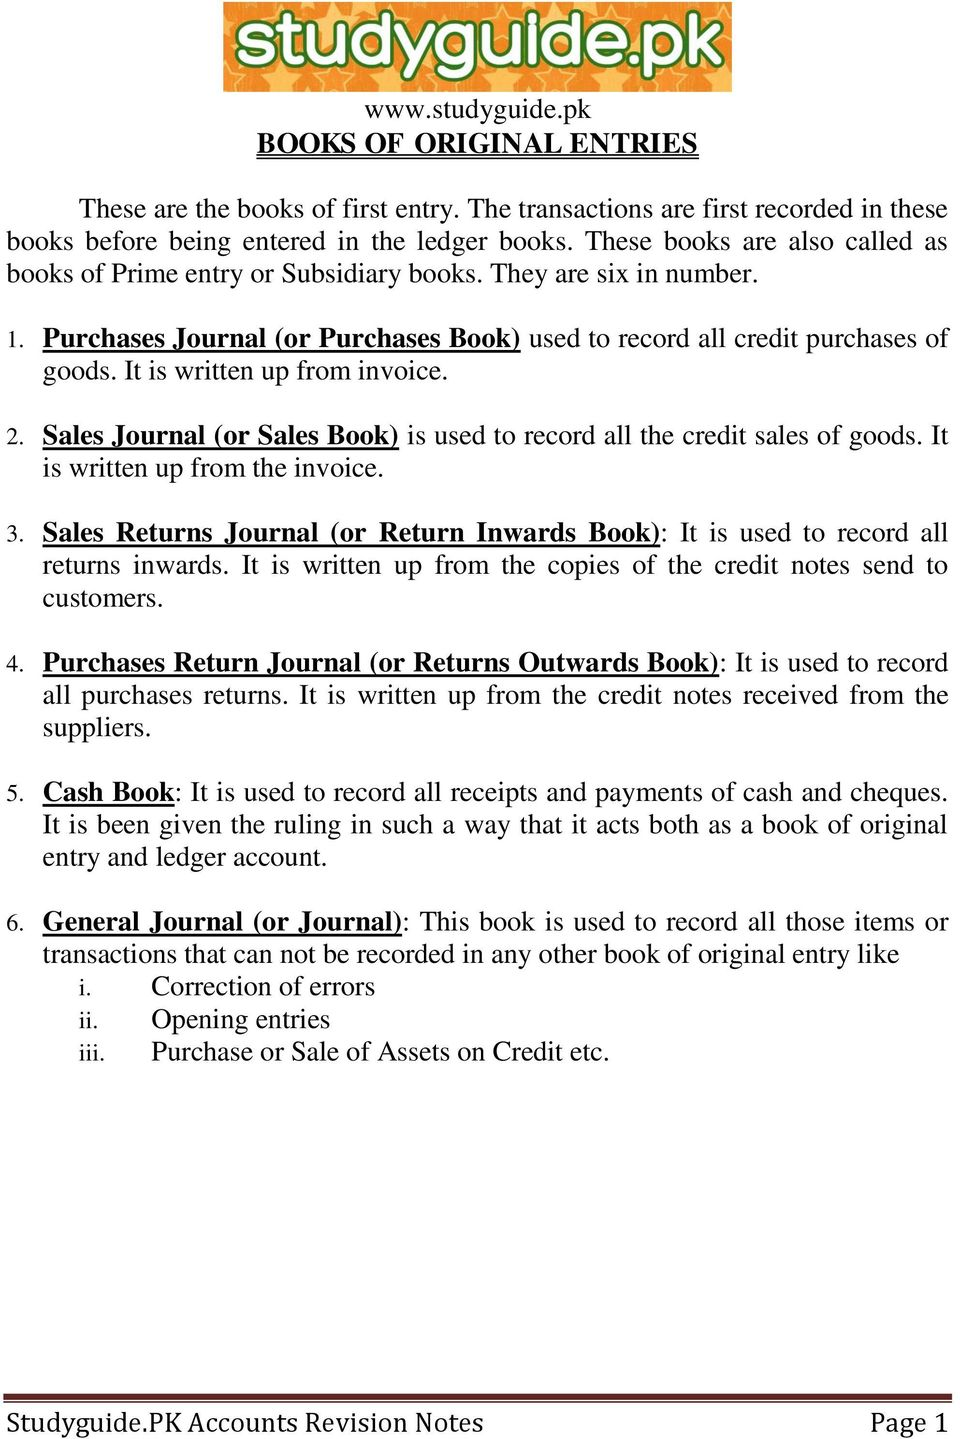 studyguide pk accounts revision notes page 1 pdf rh docplayer net